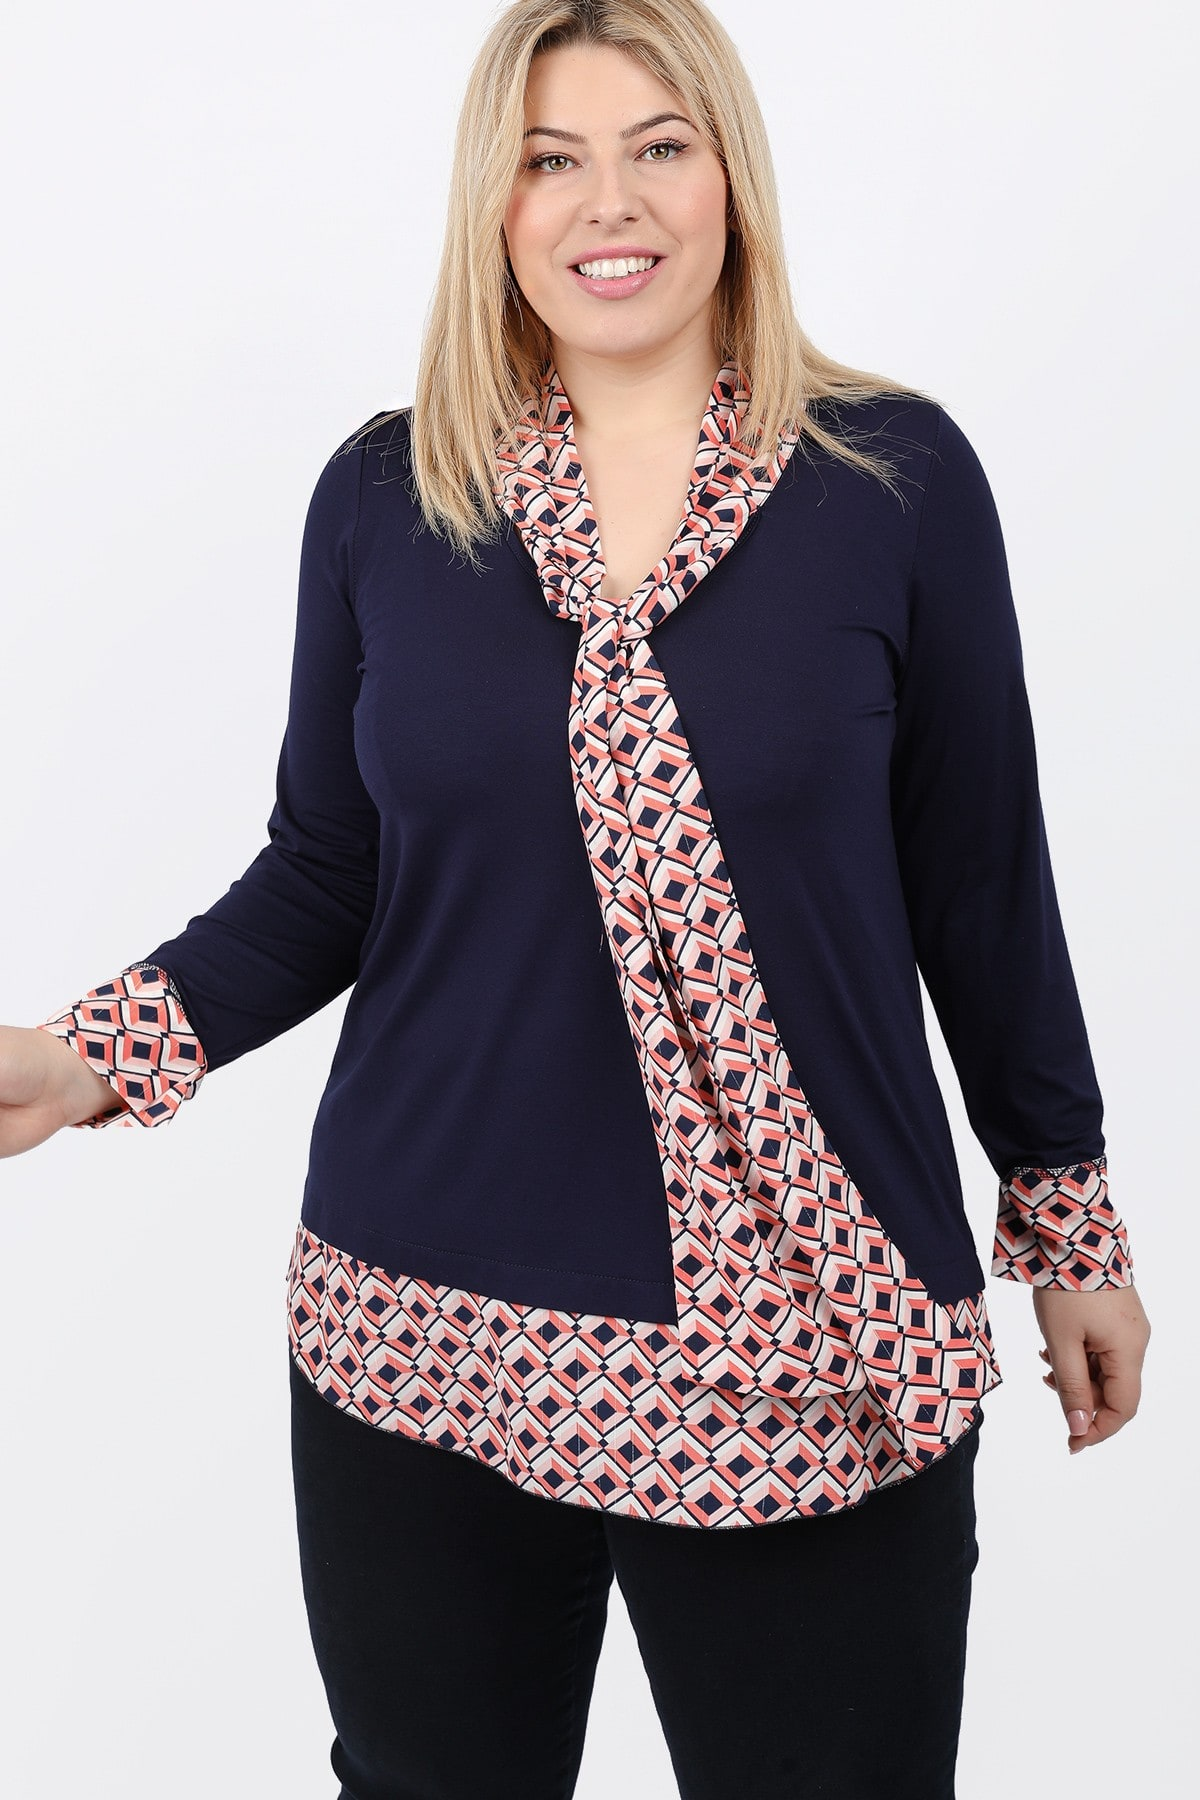 Blouse with details of printed georgette